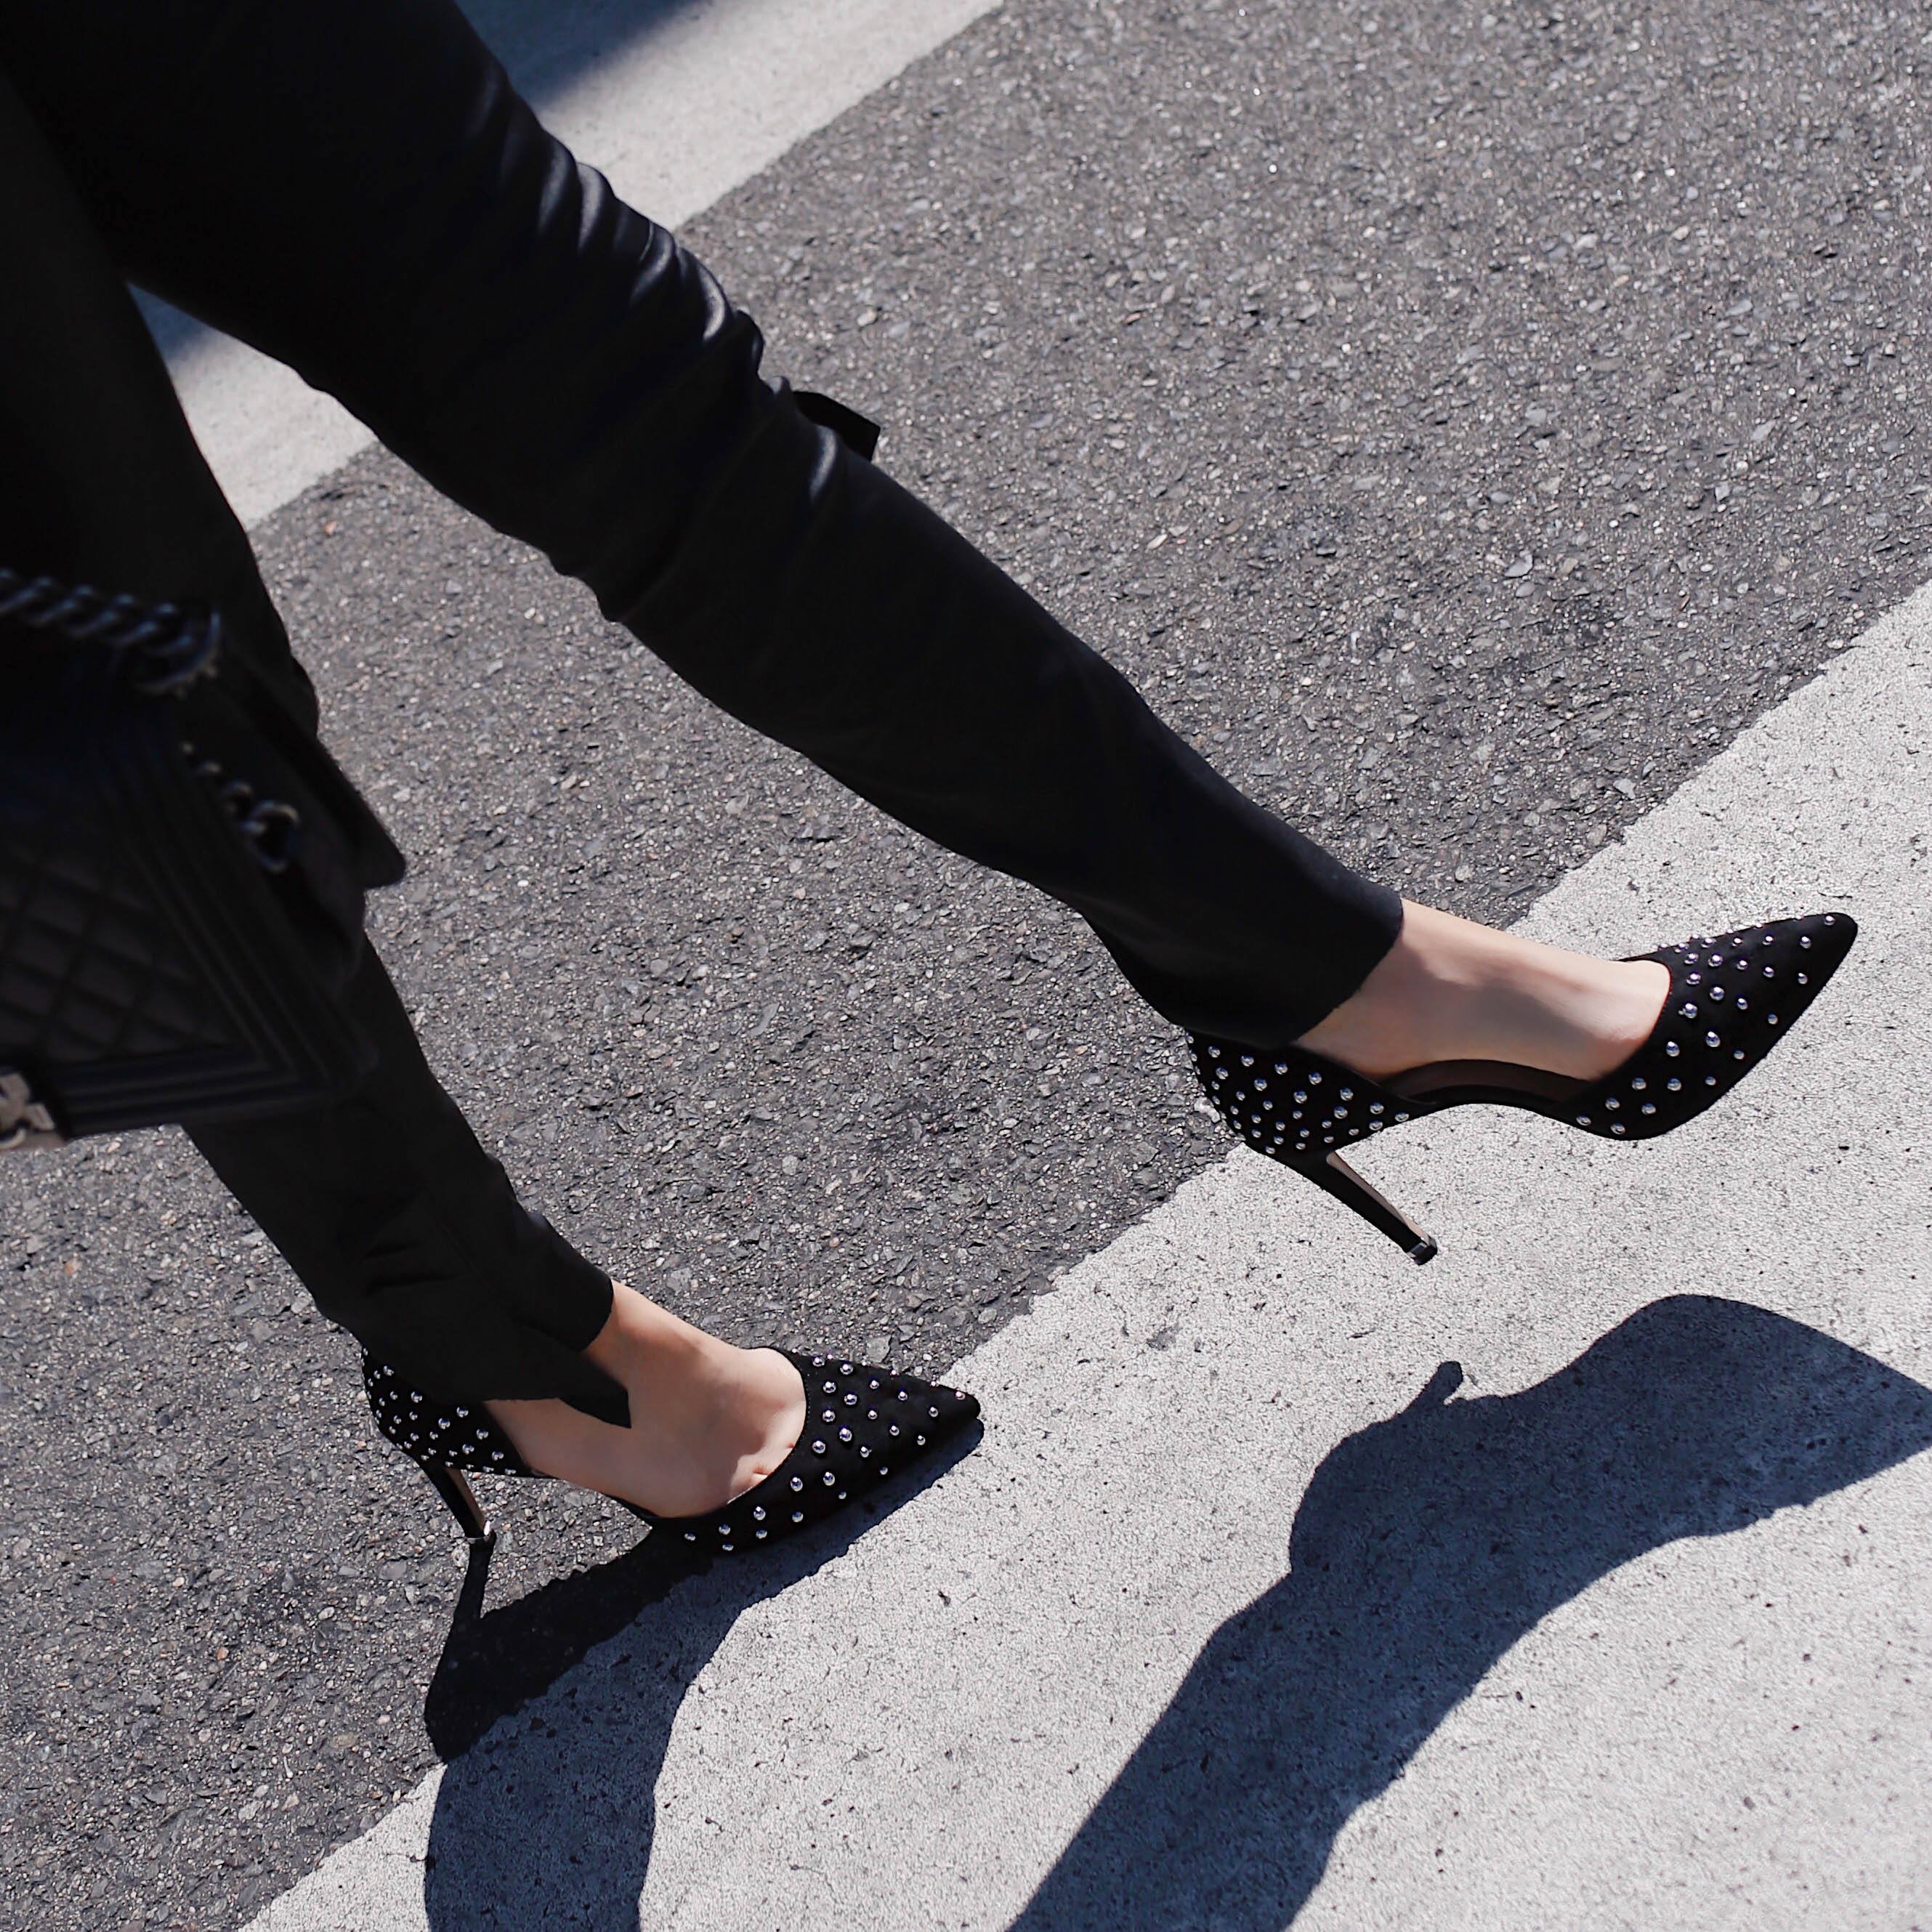 85 Riley studded d Orsay pumps Kenneth Cole Tech cole footwear Riley shoes comfortable versatile stylish pumps perfect to commute #HeelsForTheHustle #WhatMovesYou leather skinny pants